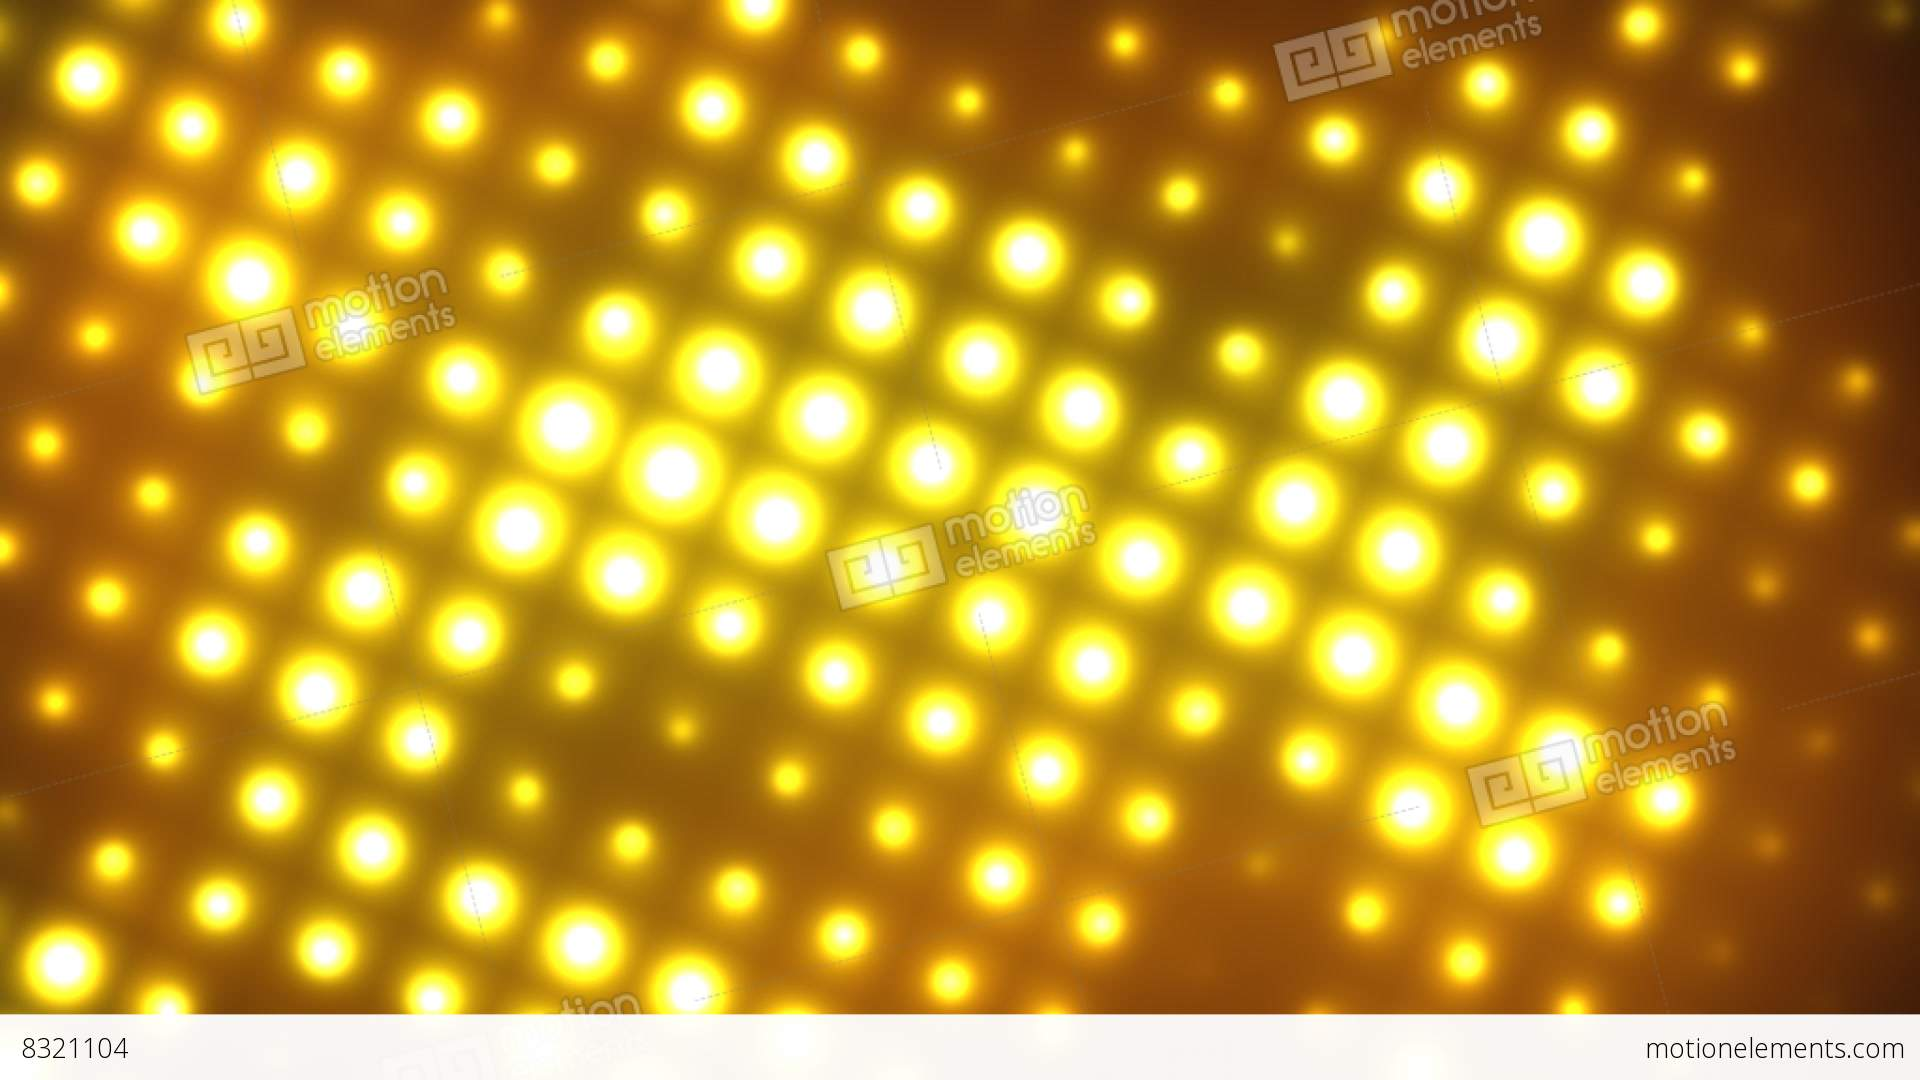 Cute Science Wallpaper Dj Dance Party Circular Lights 1 Loopable Background